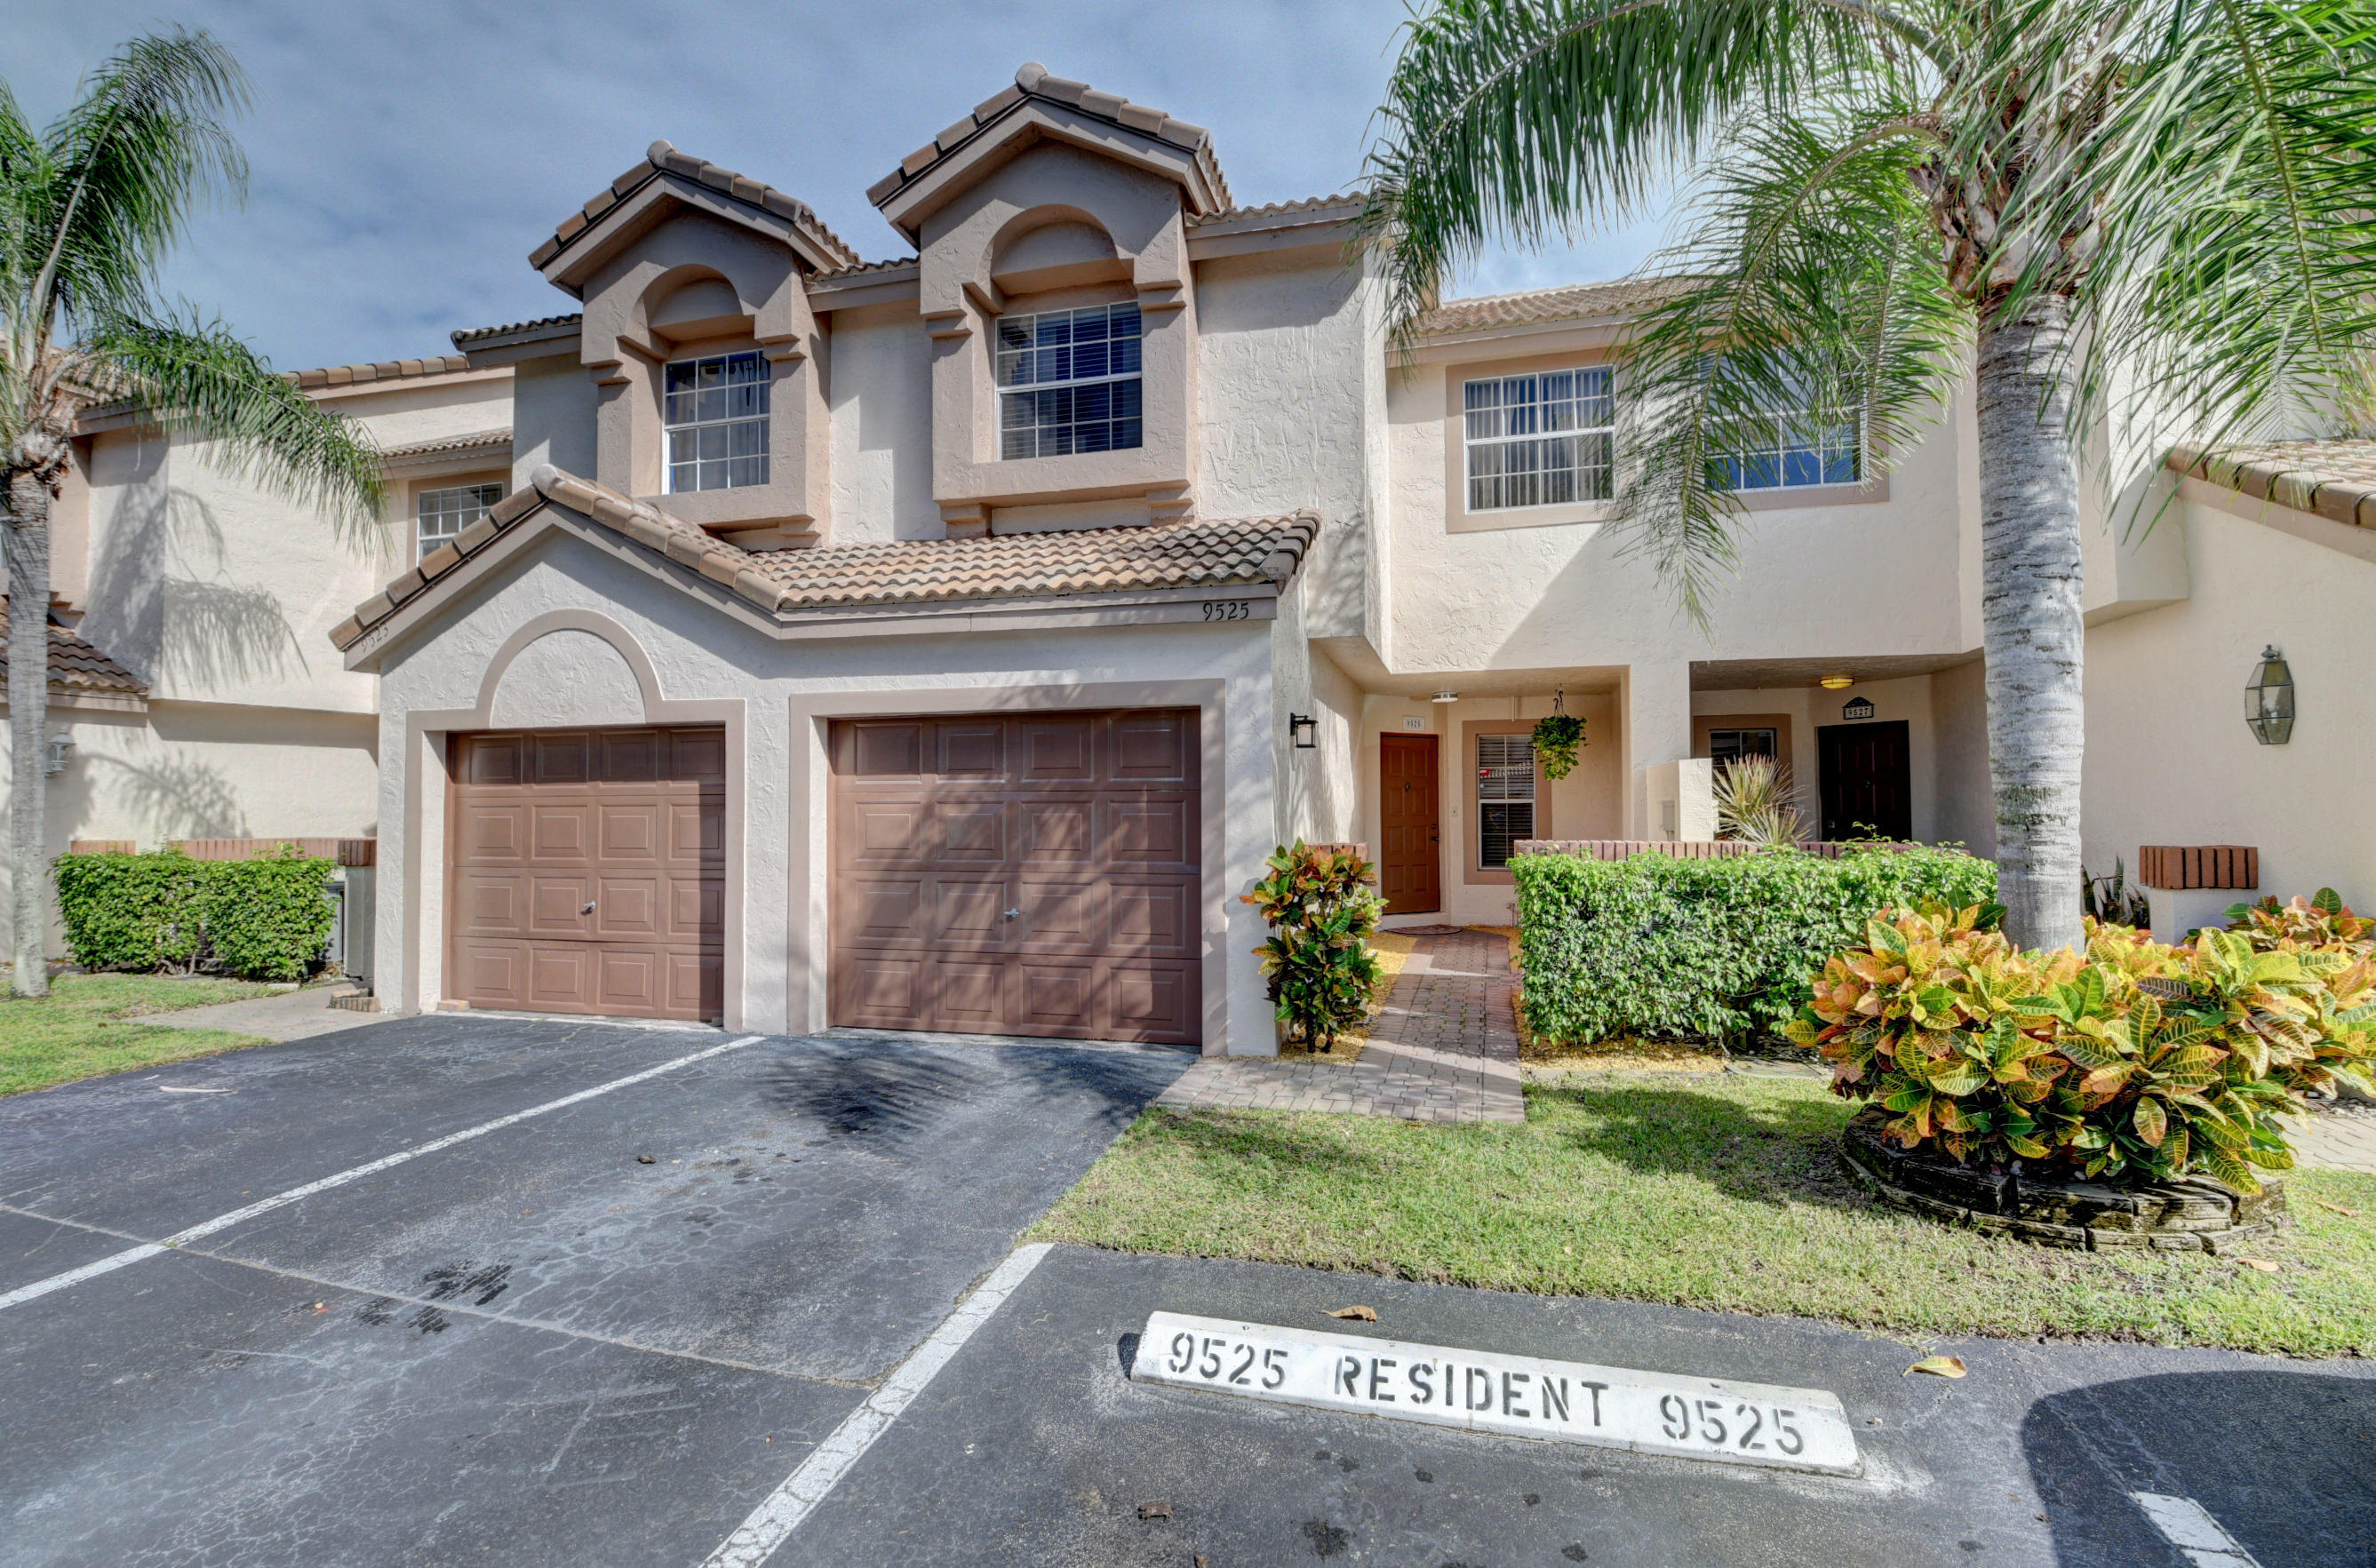 Home for sale in Coral Lakes Boca Raton Florida